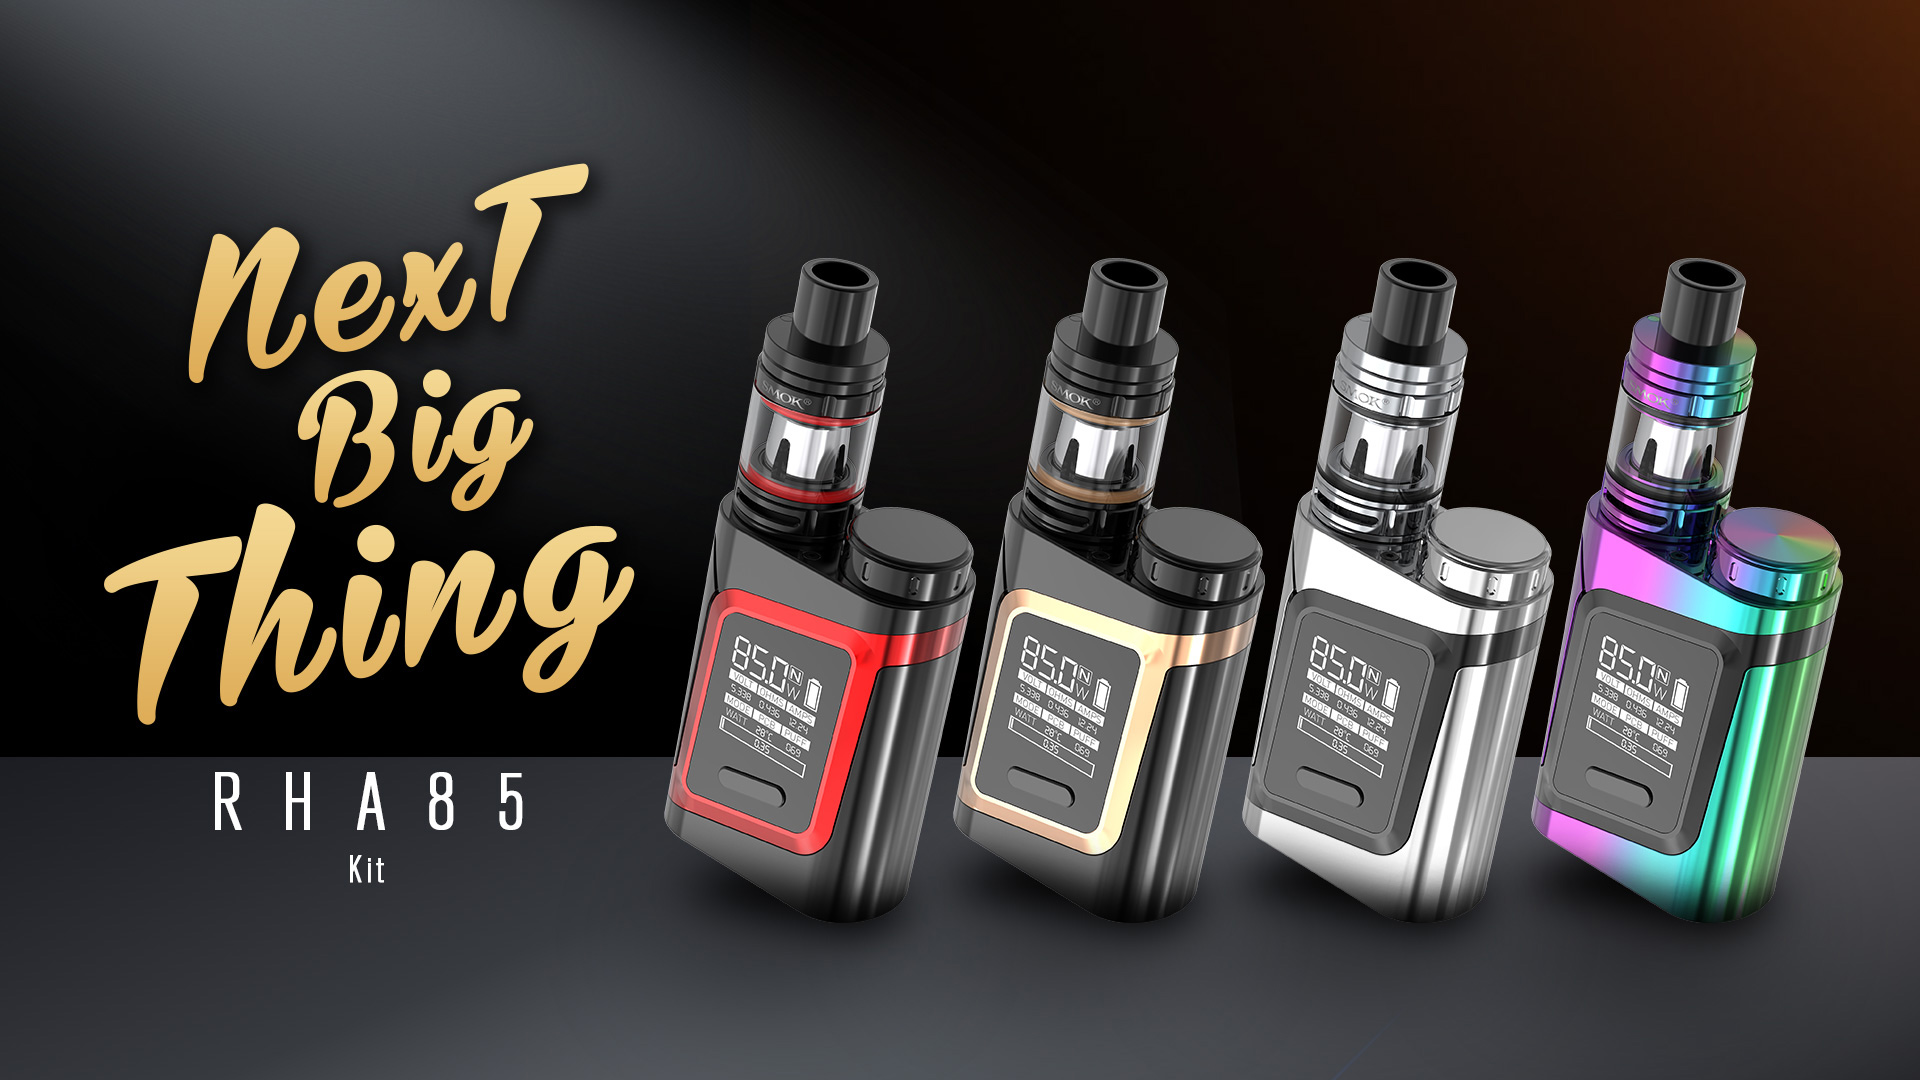 RHA85 Kit - SMOK® | Innovation Keeps Changing the Vaping